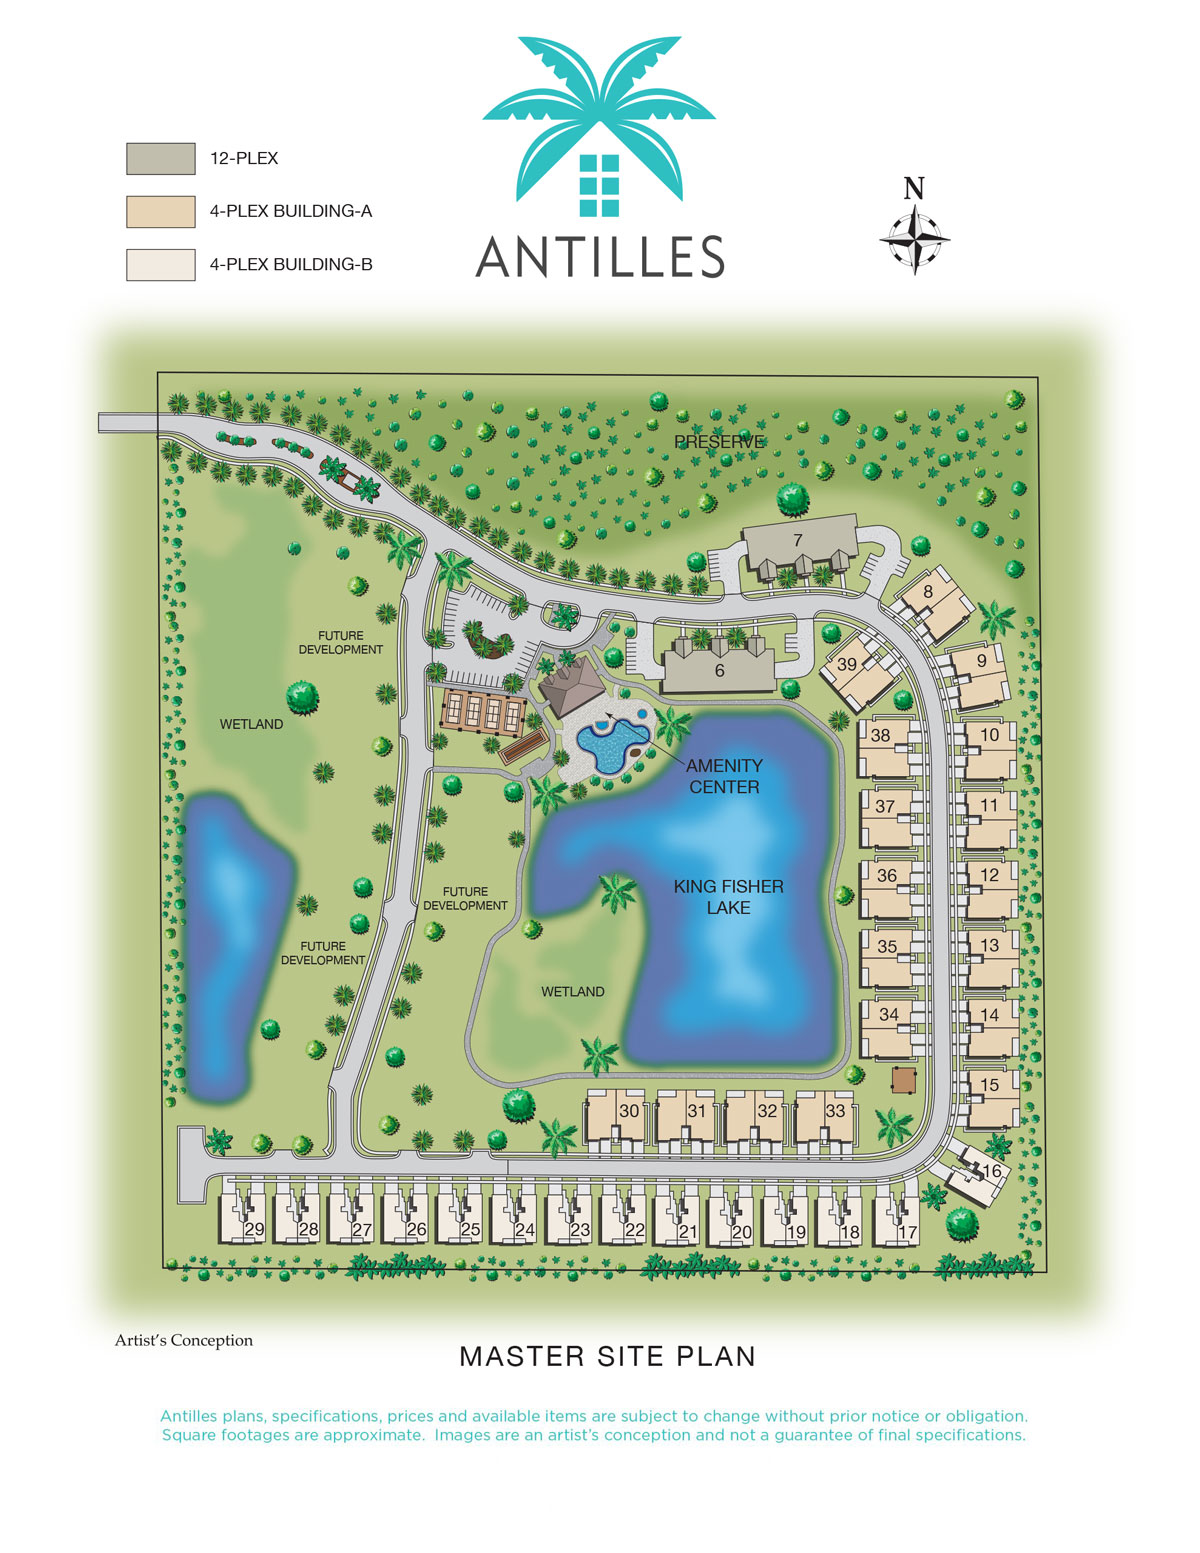 Master Site Plan | Antilles of Naples, Florida - West Indies Styled Residential Resort